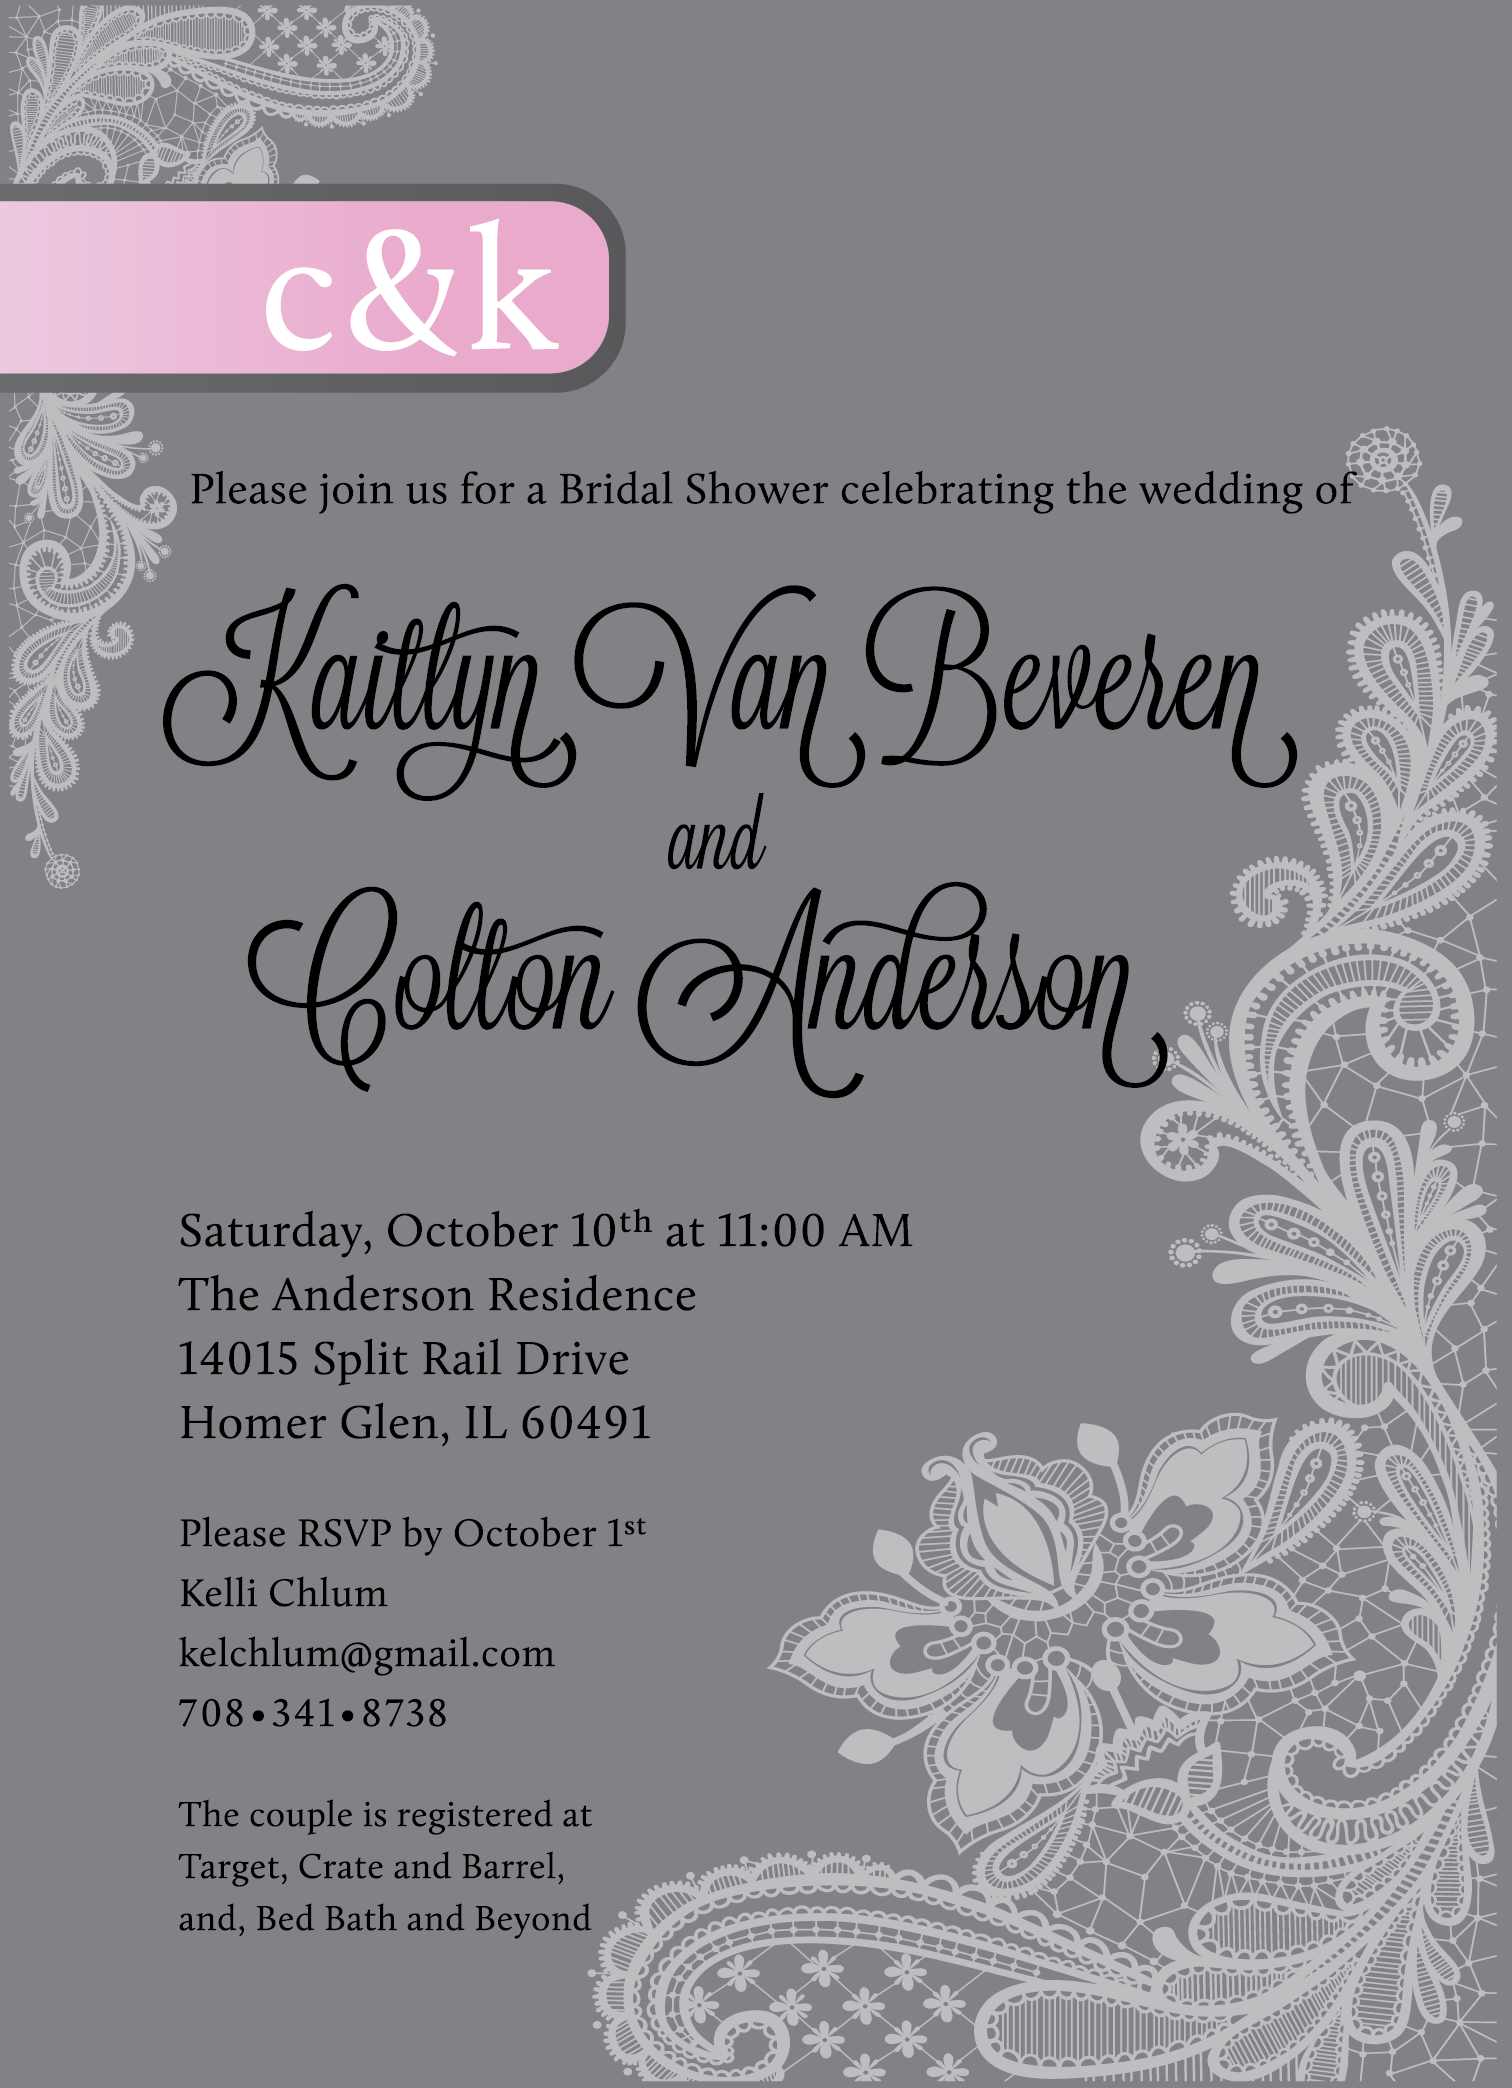 Andrea melone anderson wedding shower invitations bridal shower invitations commissioned by the maid of honor to match the wedding theme of vintage and romantic with wedding colors of grays and light pinks filmwisefo Choice Image